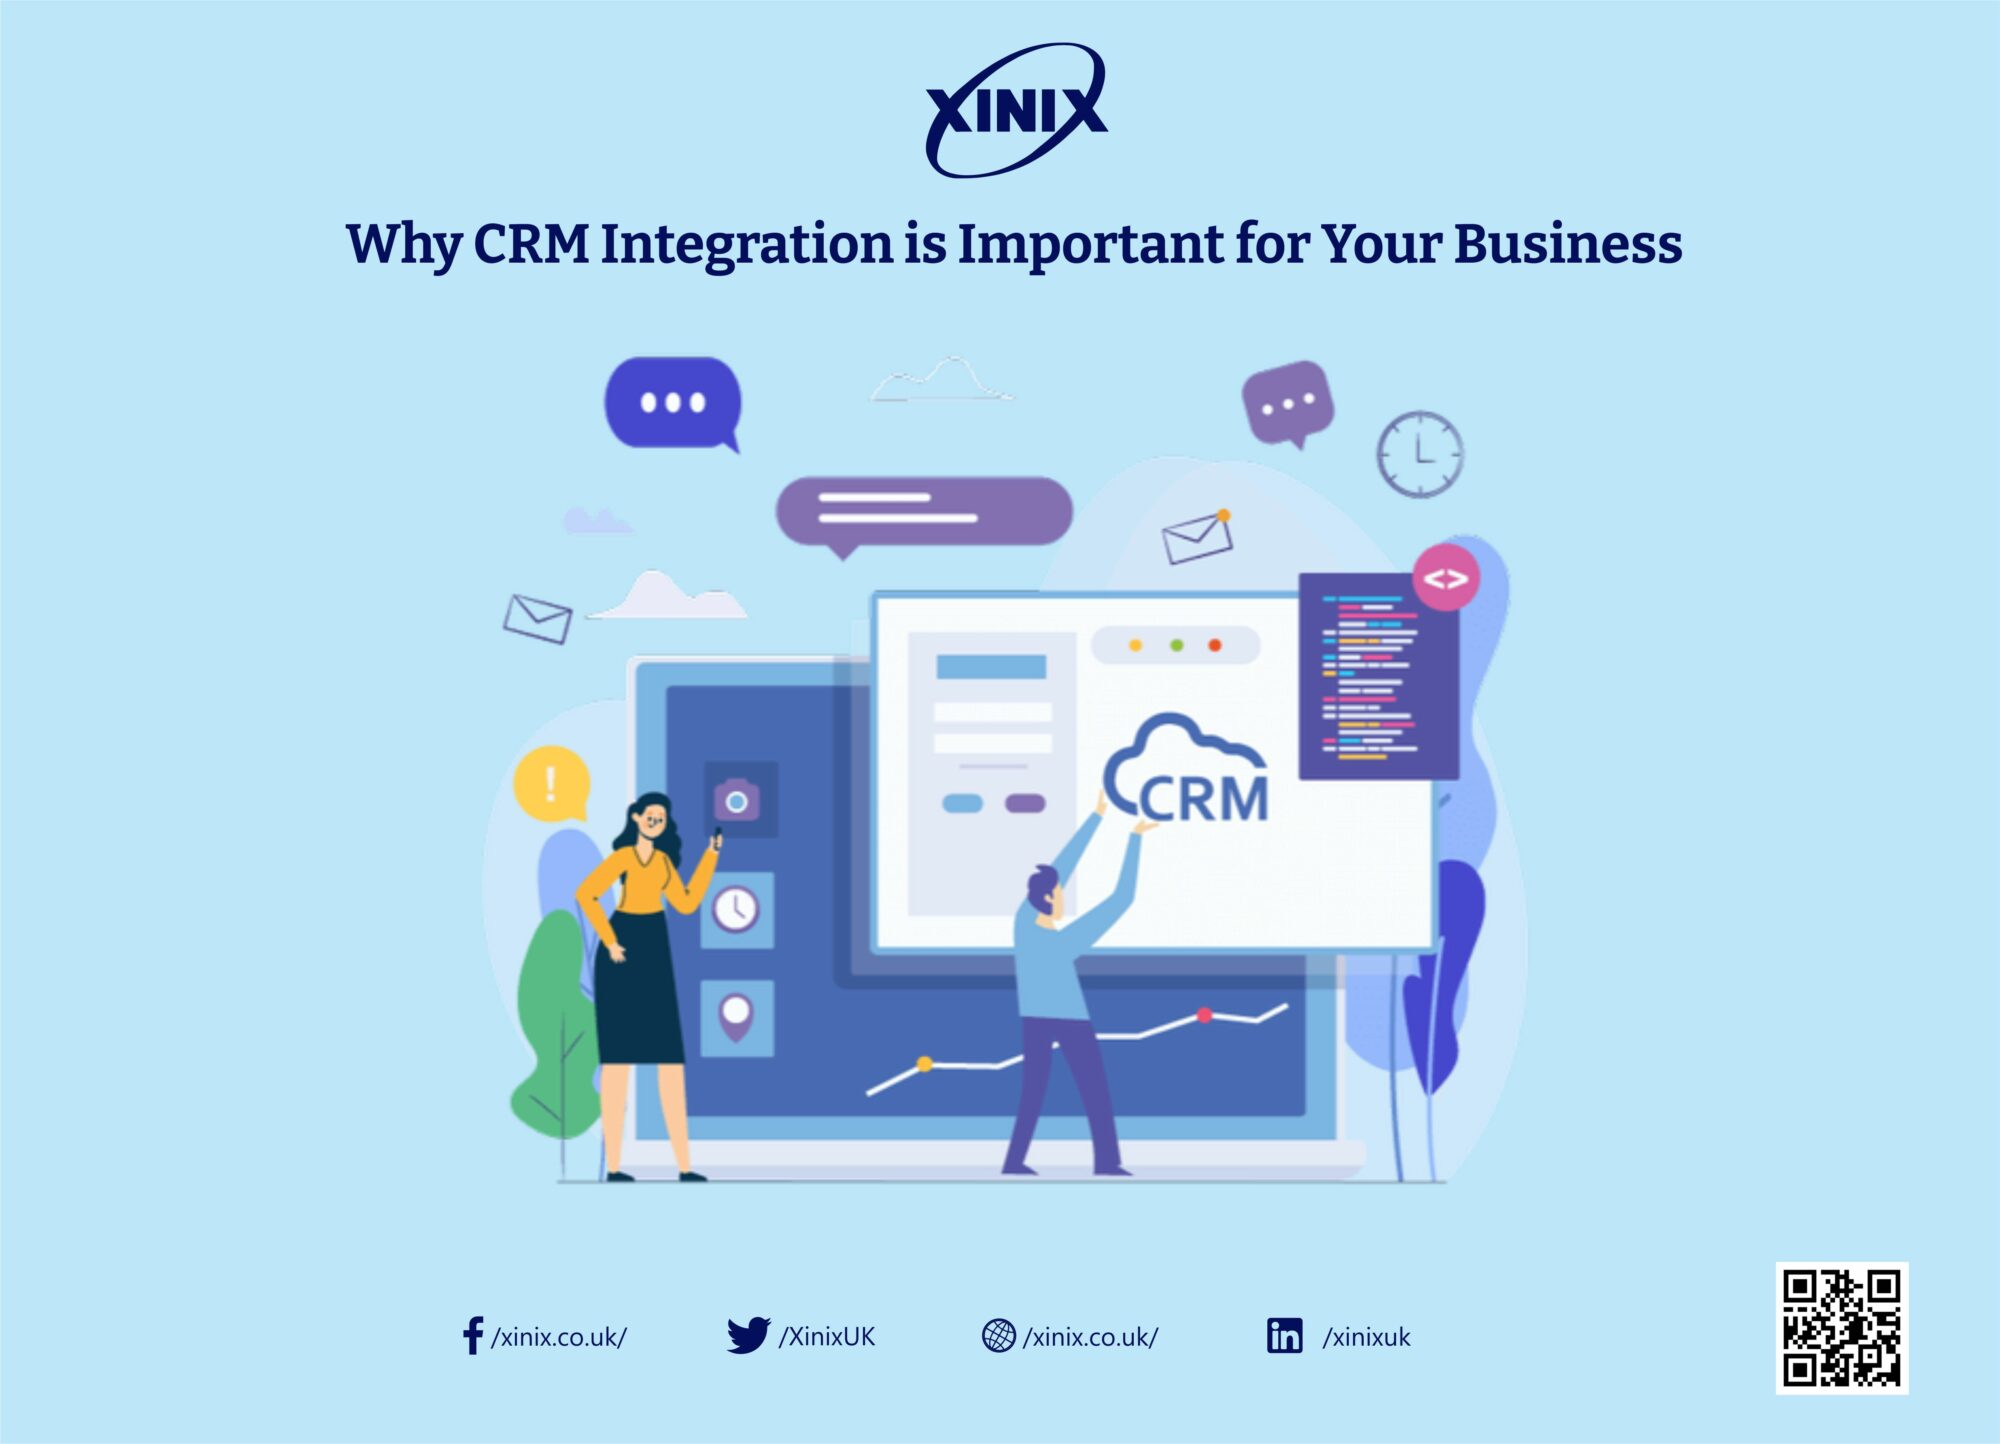 Why CRM Integration is Important for Your Business